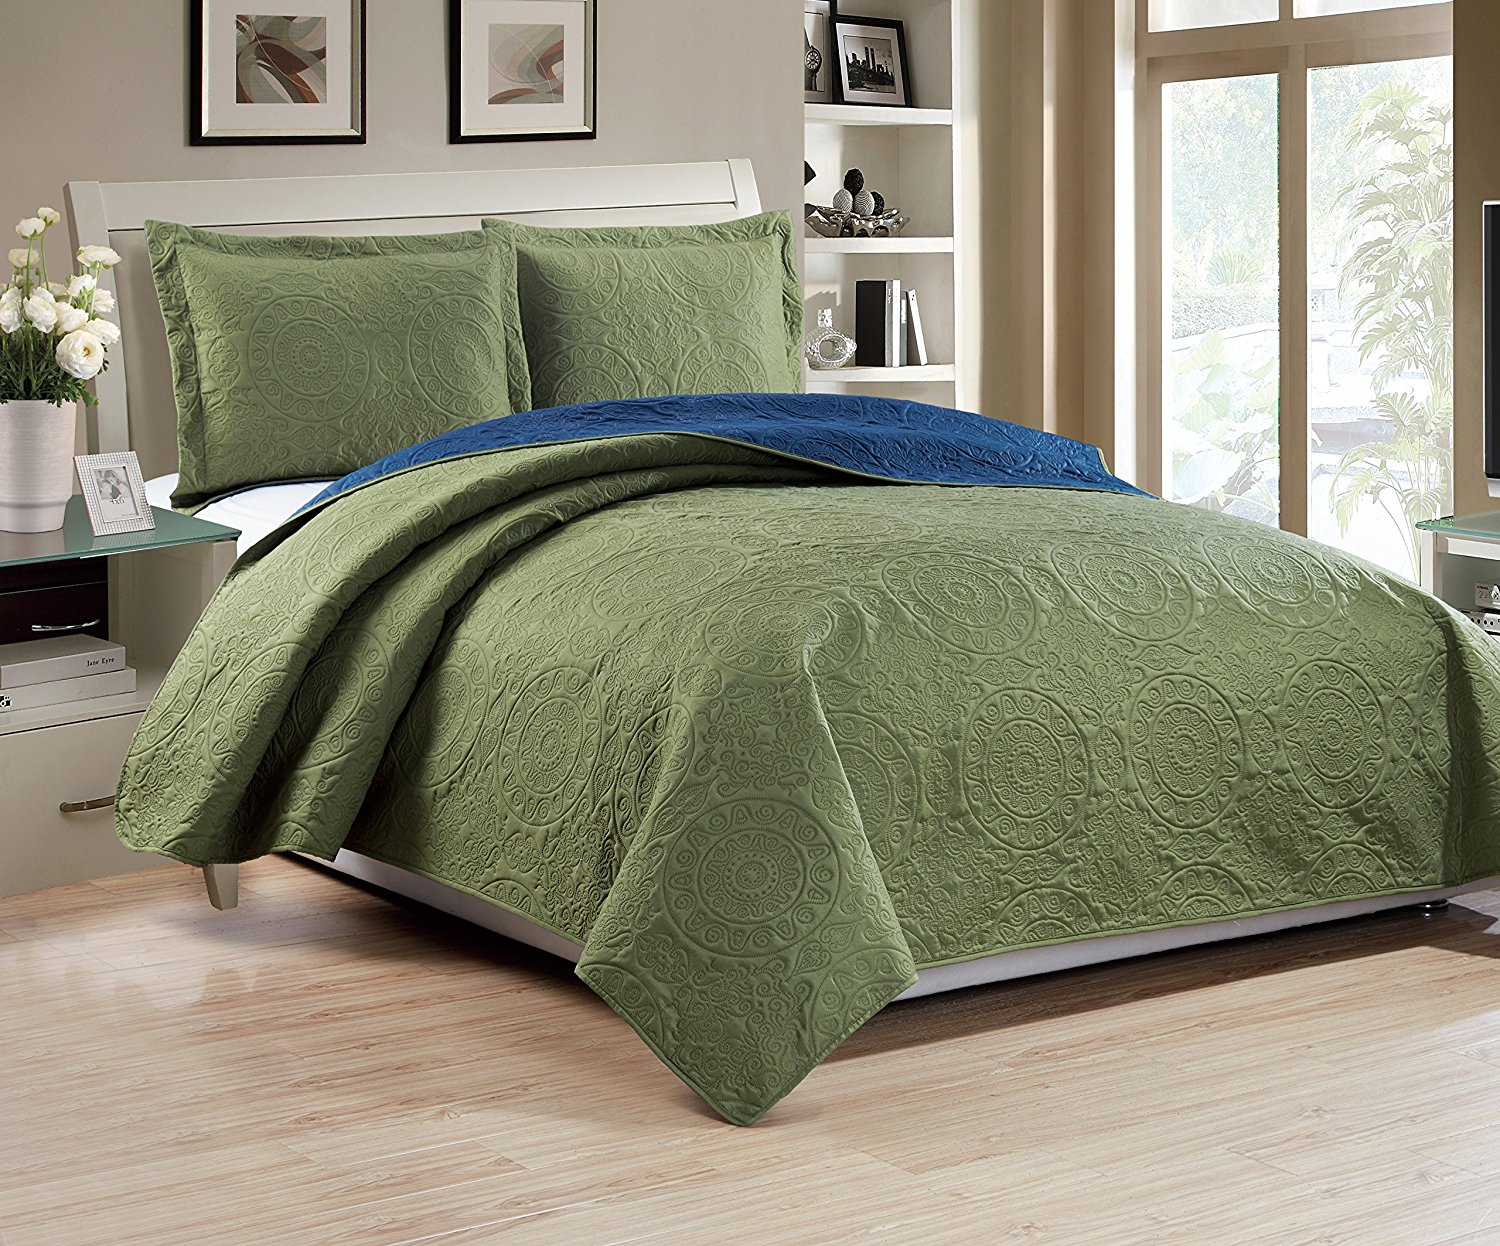 Woven Trends Medallion Collection Two-Tone Reversible 3-Piece Quilt Set Bedspread Coverlet by Woven Trends